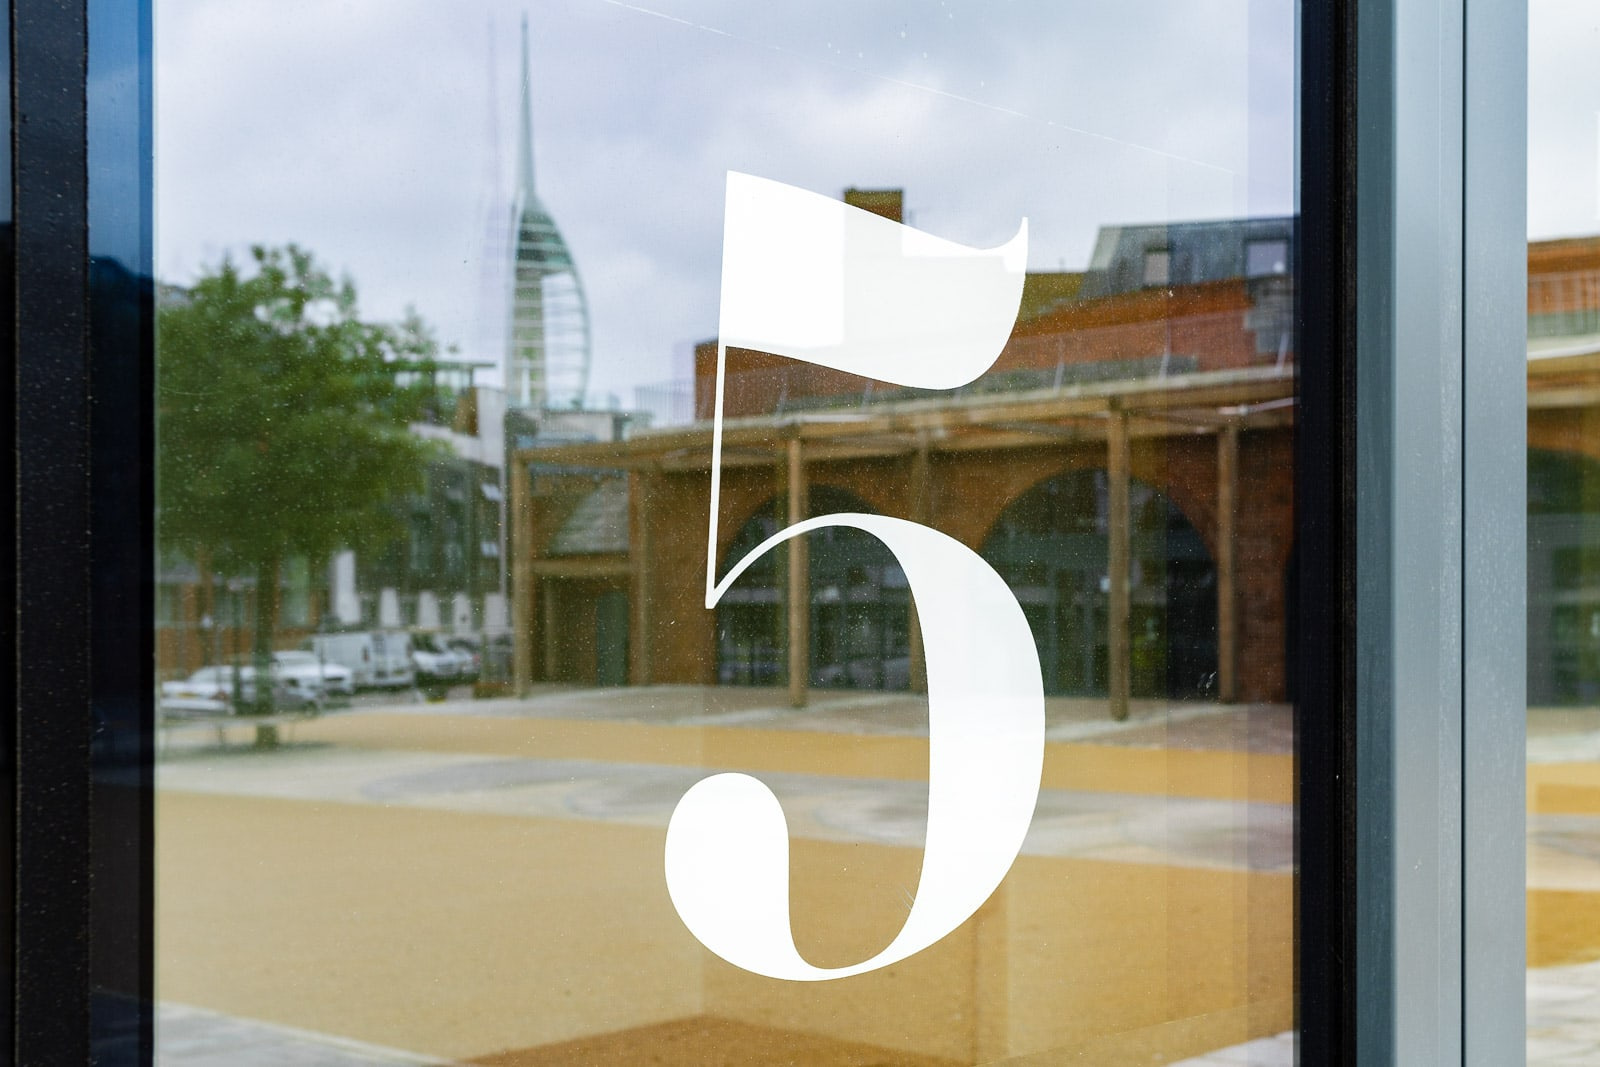 Interior view looking out from artists studio to portsmouth hot walls area featuring the number five on the door